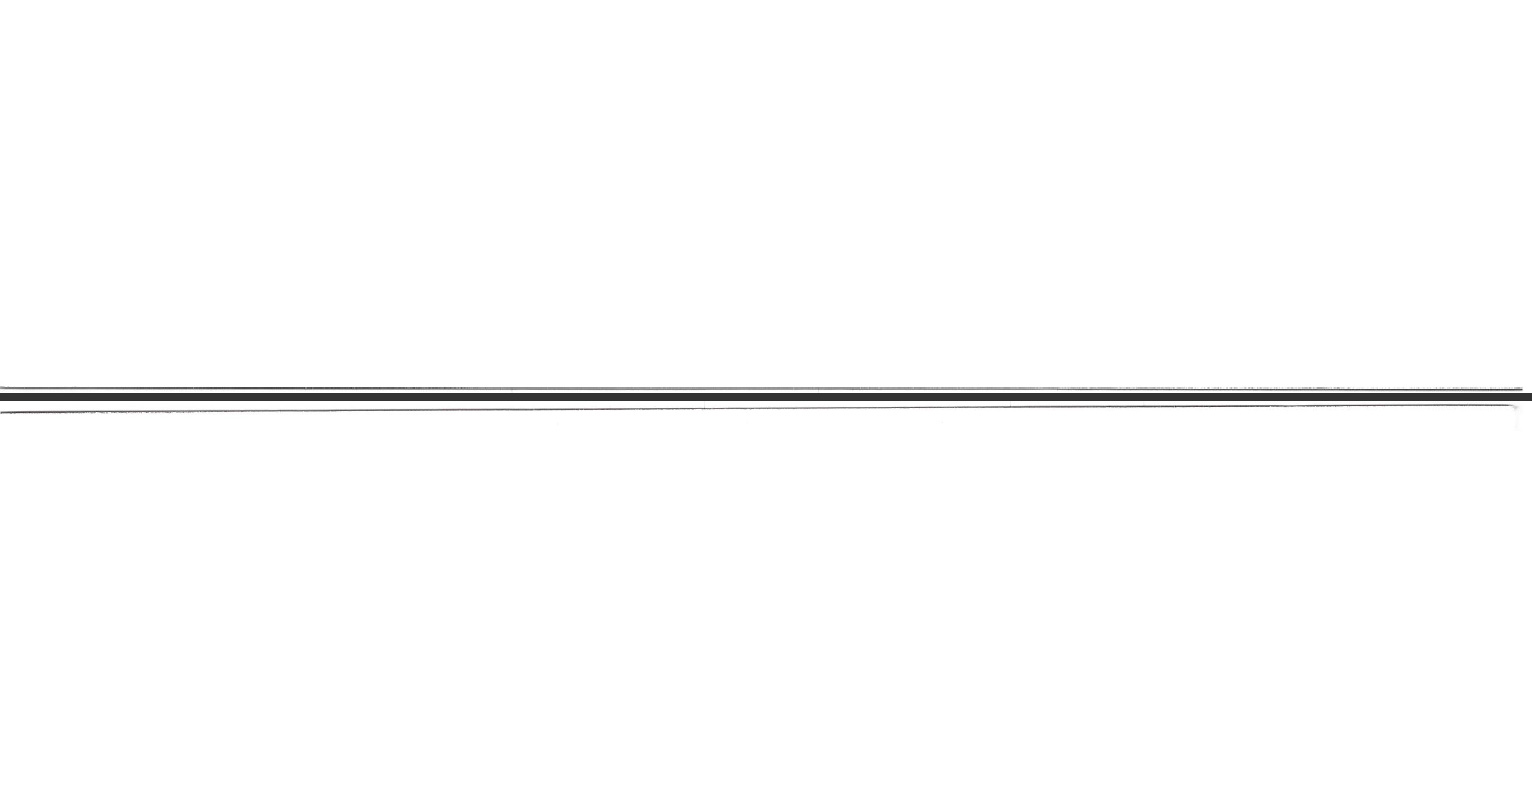 Clipart Of Straight Line : After scanning black lines appear on paper edge hp